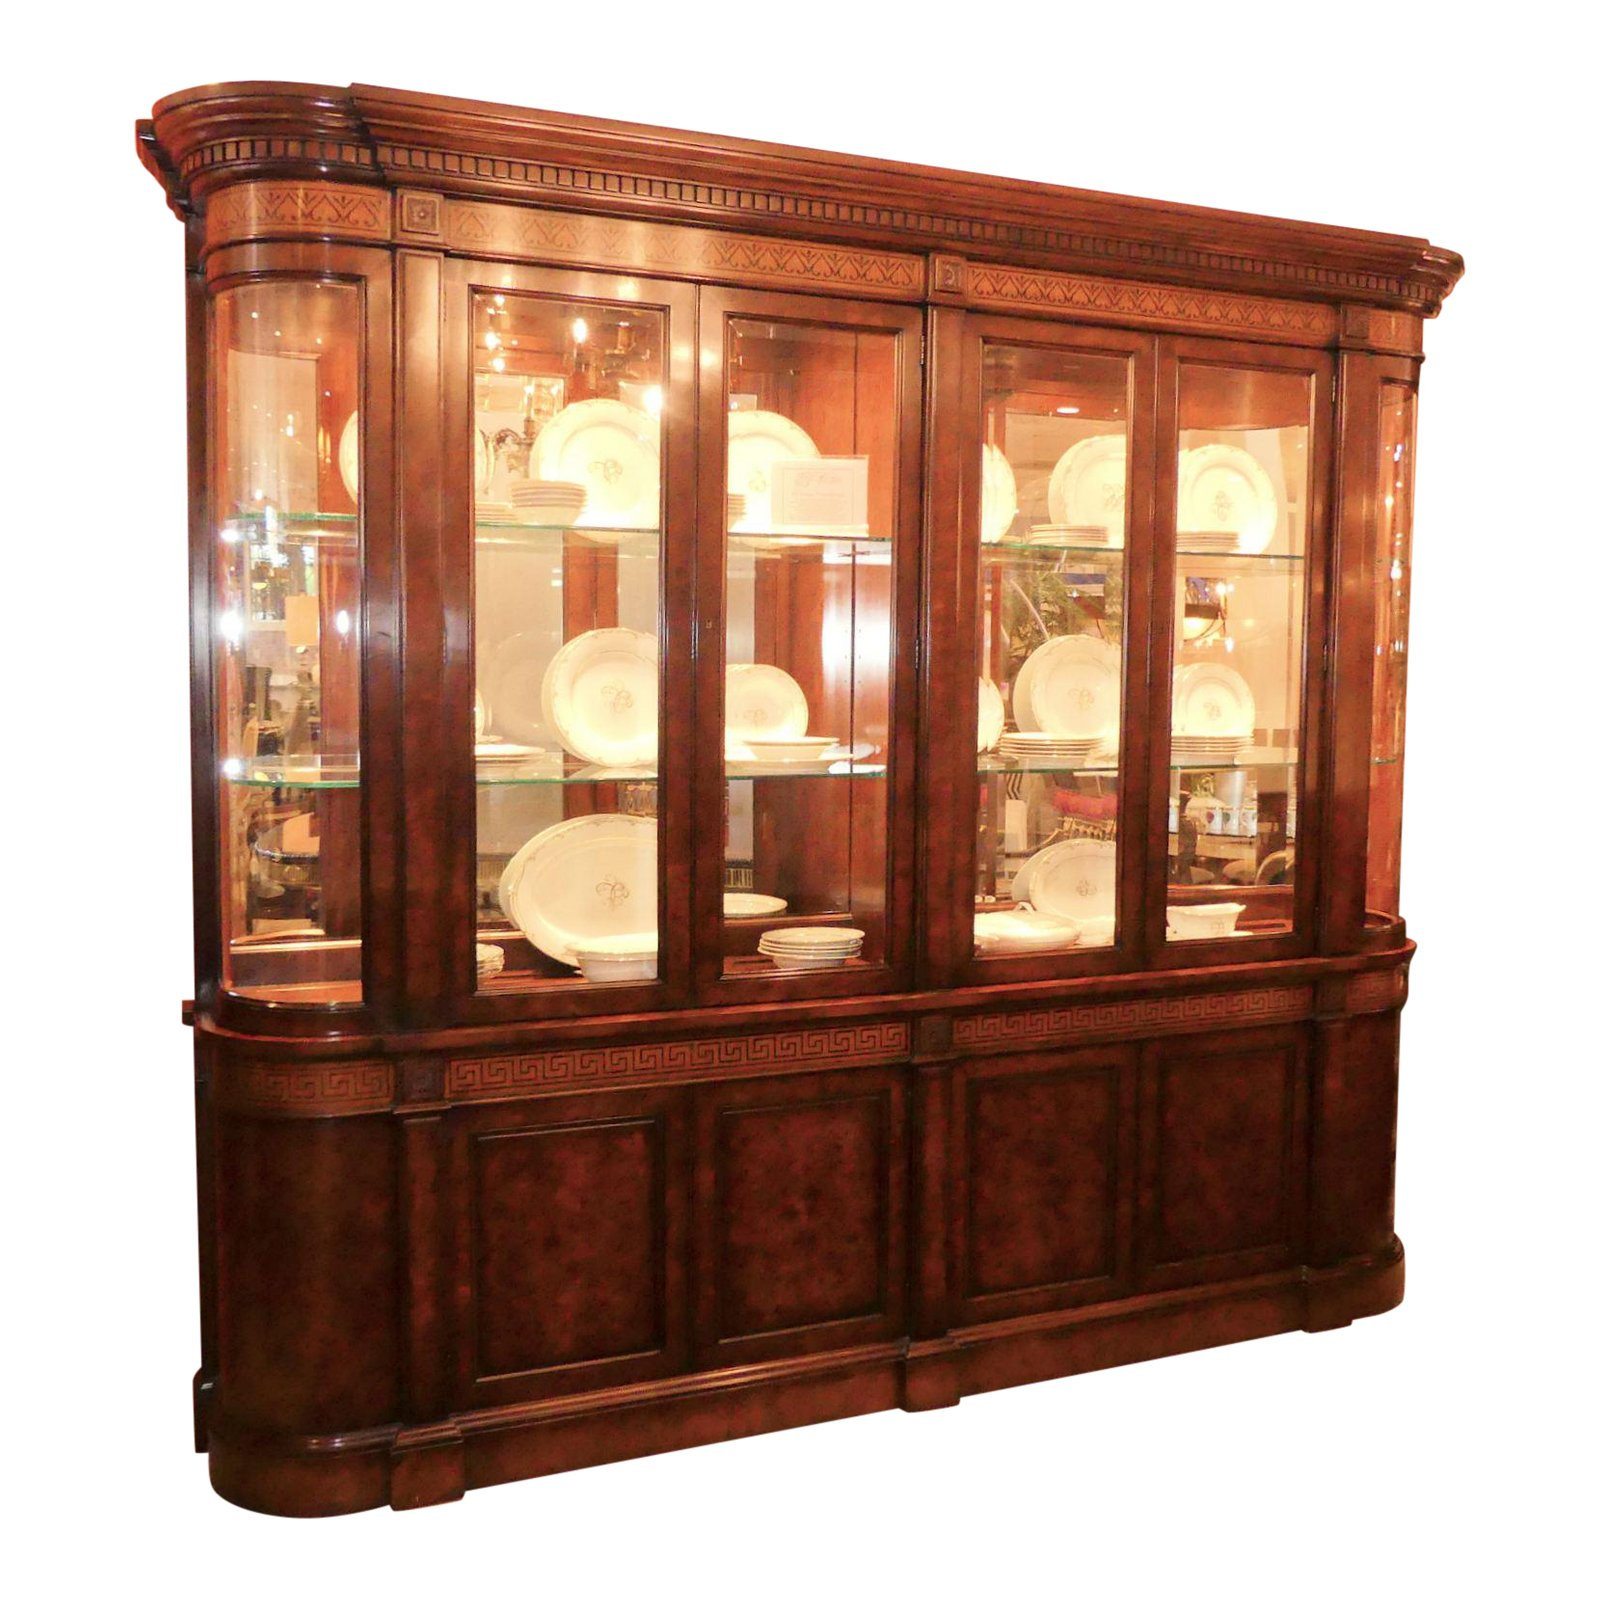 encore furniture gallery casegoods rh encorefurnituregallery com